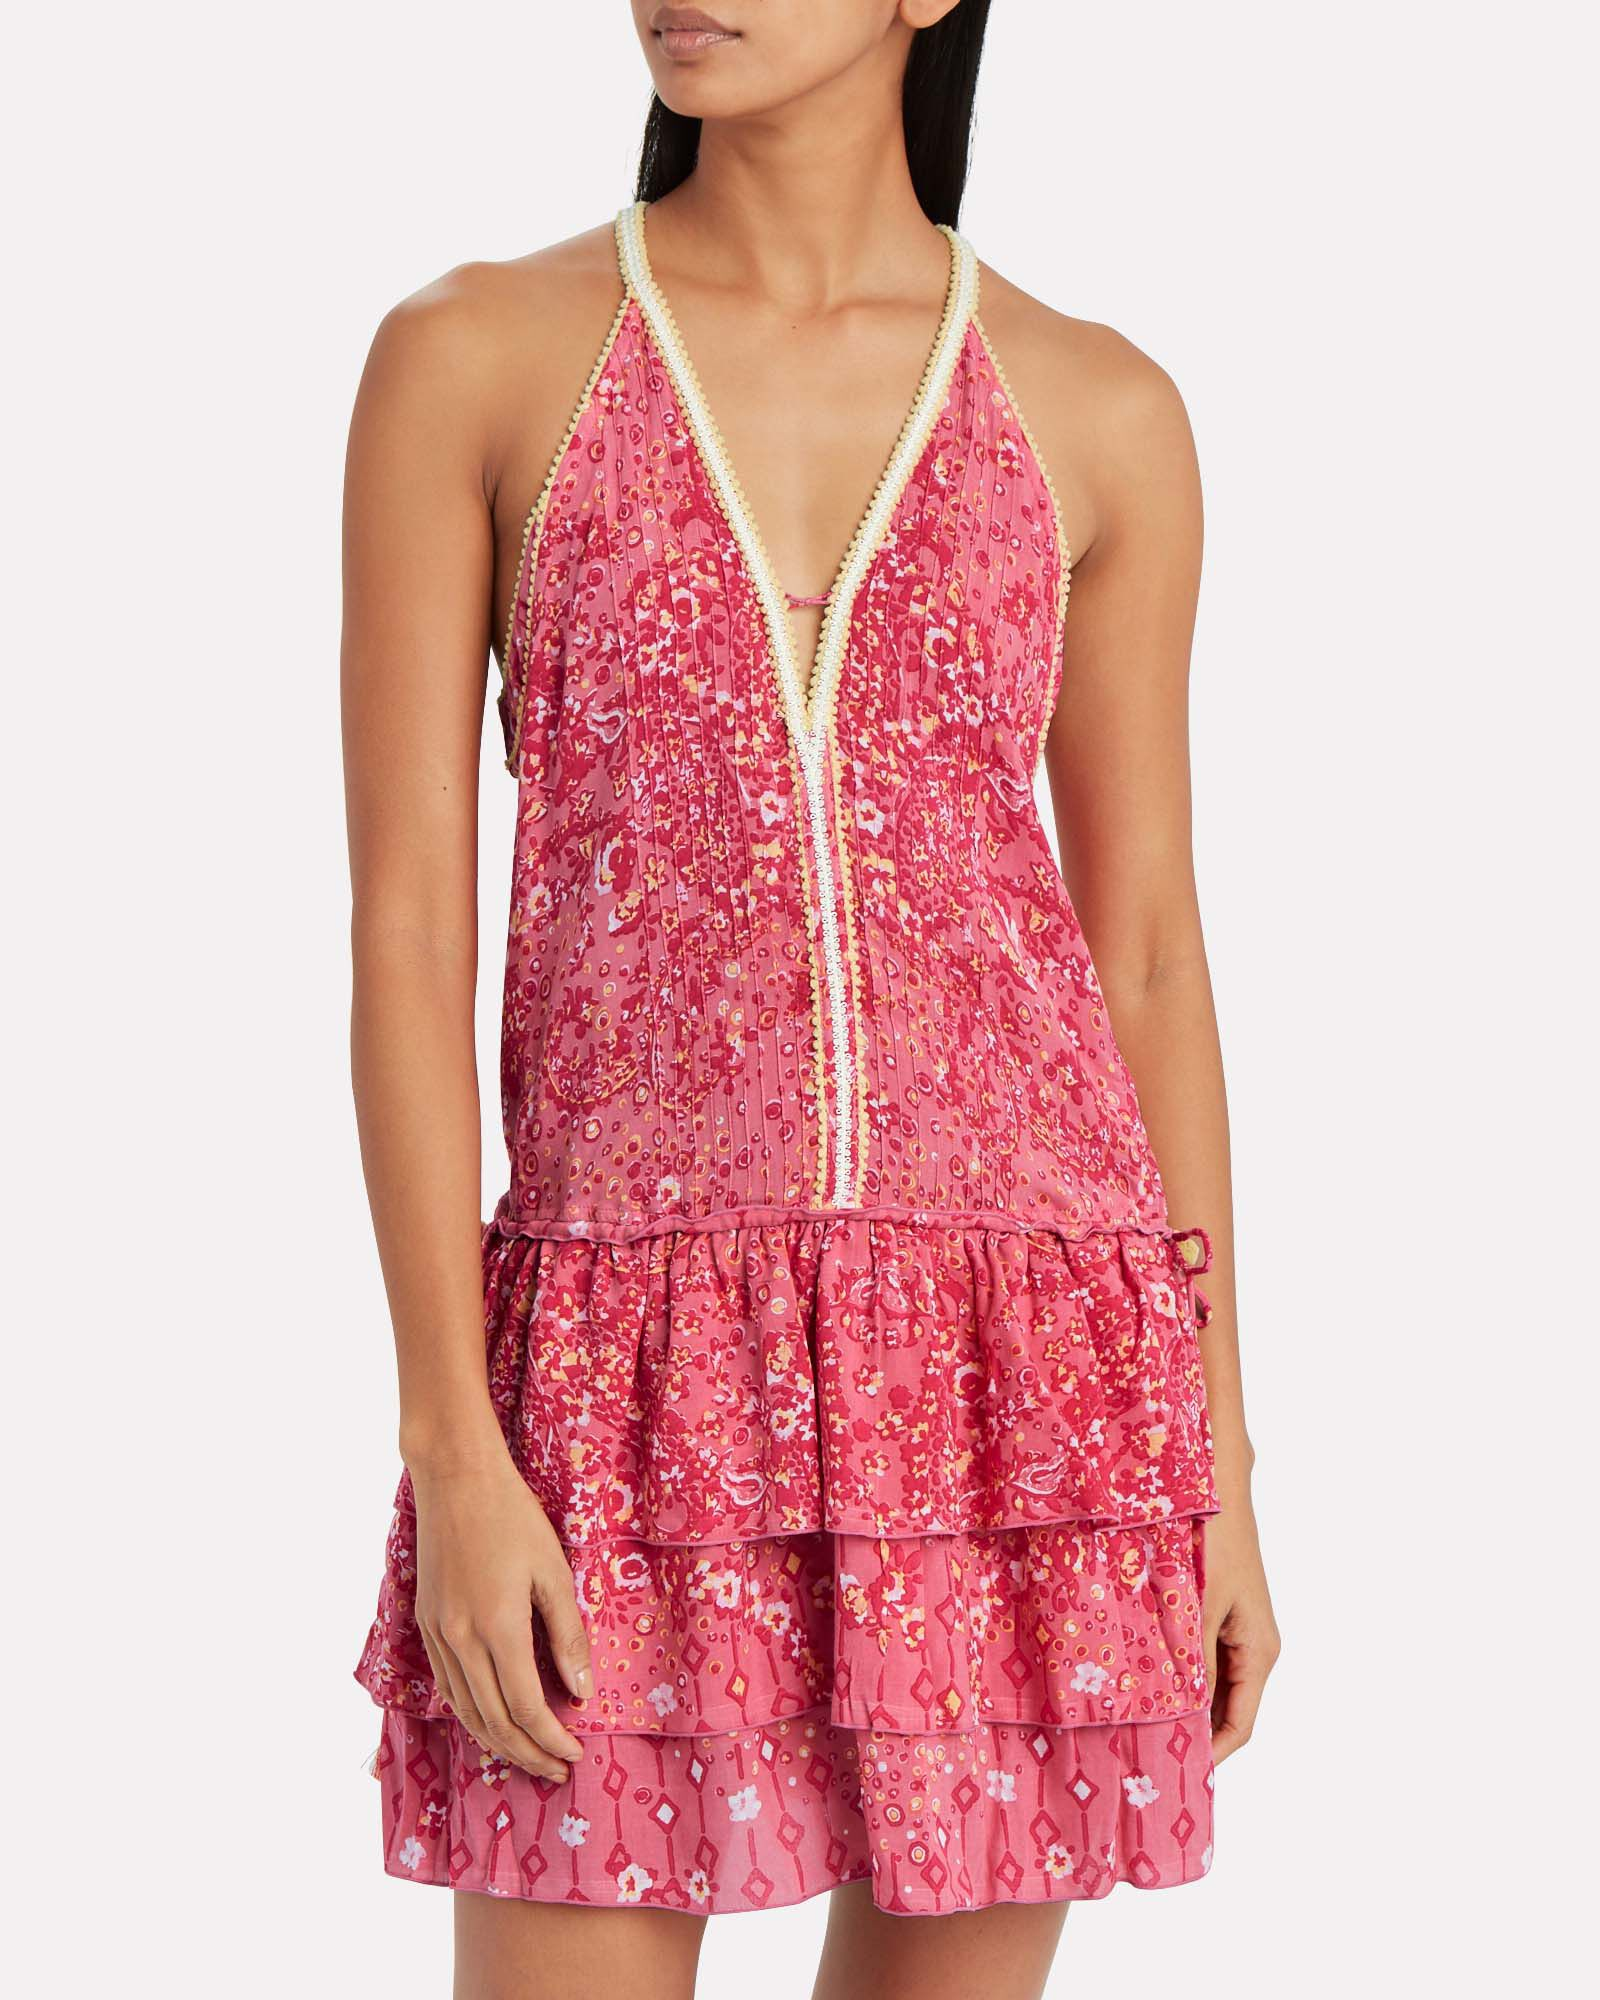 Bety Ruffled Embroidered Mini Dress, PINK, hi-res